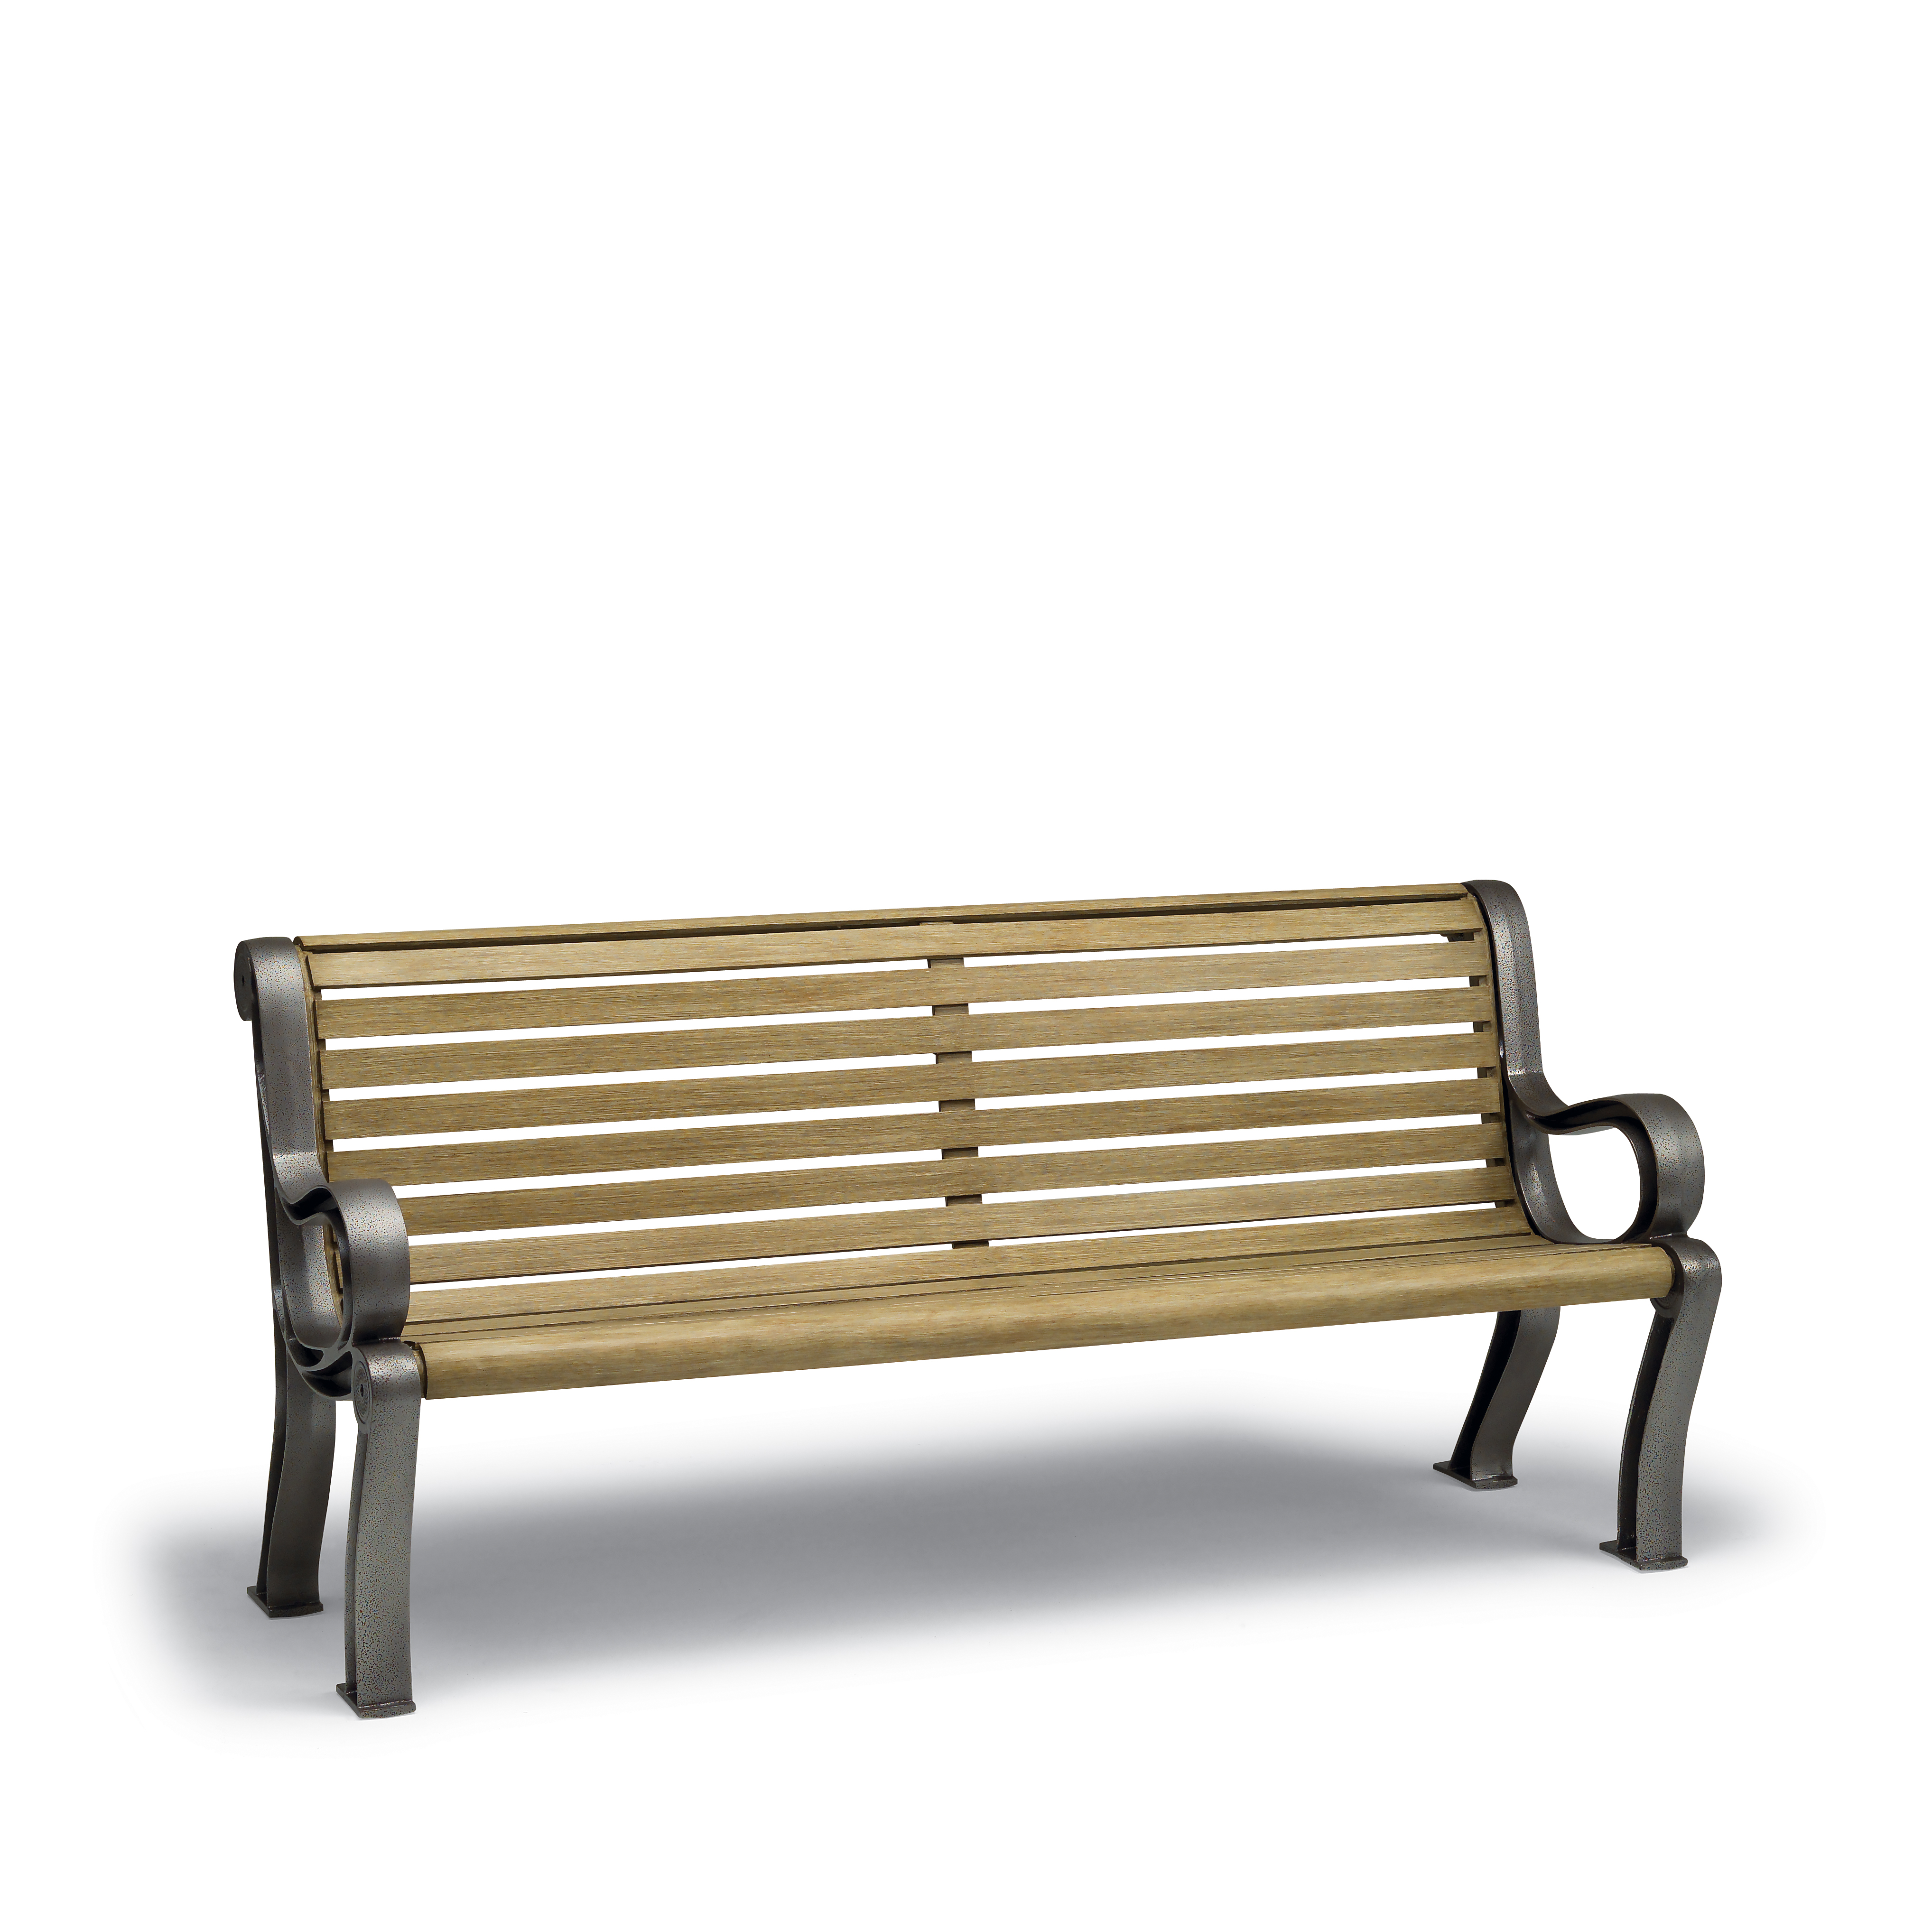 Butler Collection Contour Park Bench with Faux Wood Finish